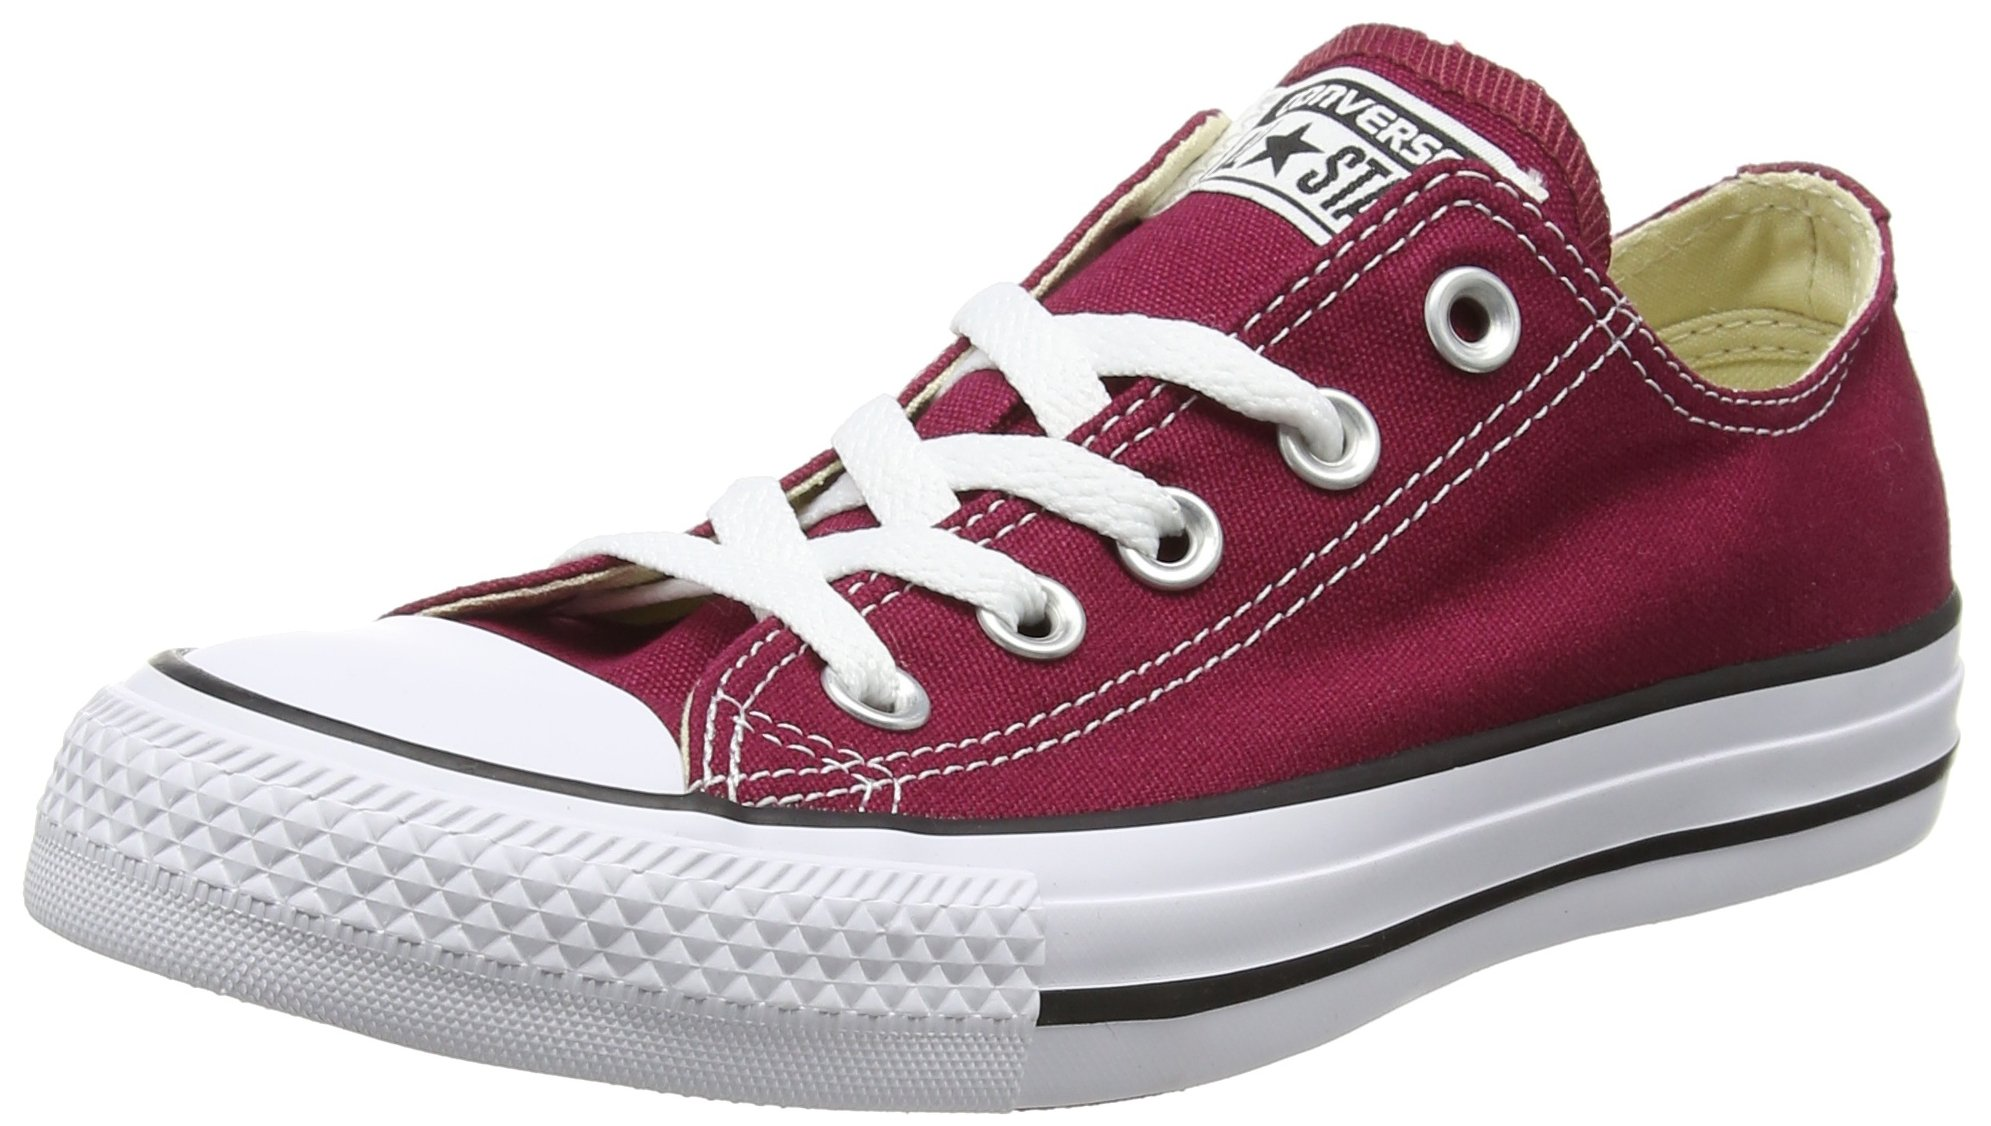 Converse Chuck Taylor Allstar Ox Unisex Trainers Maroon - 6.5 UK